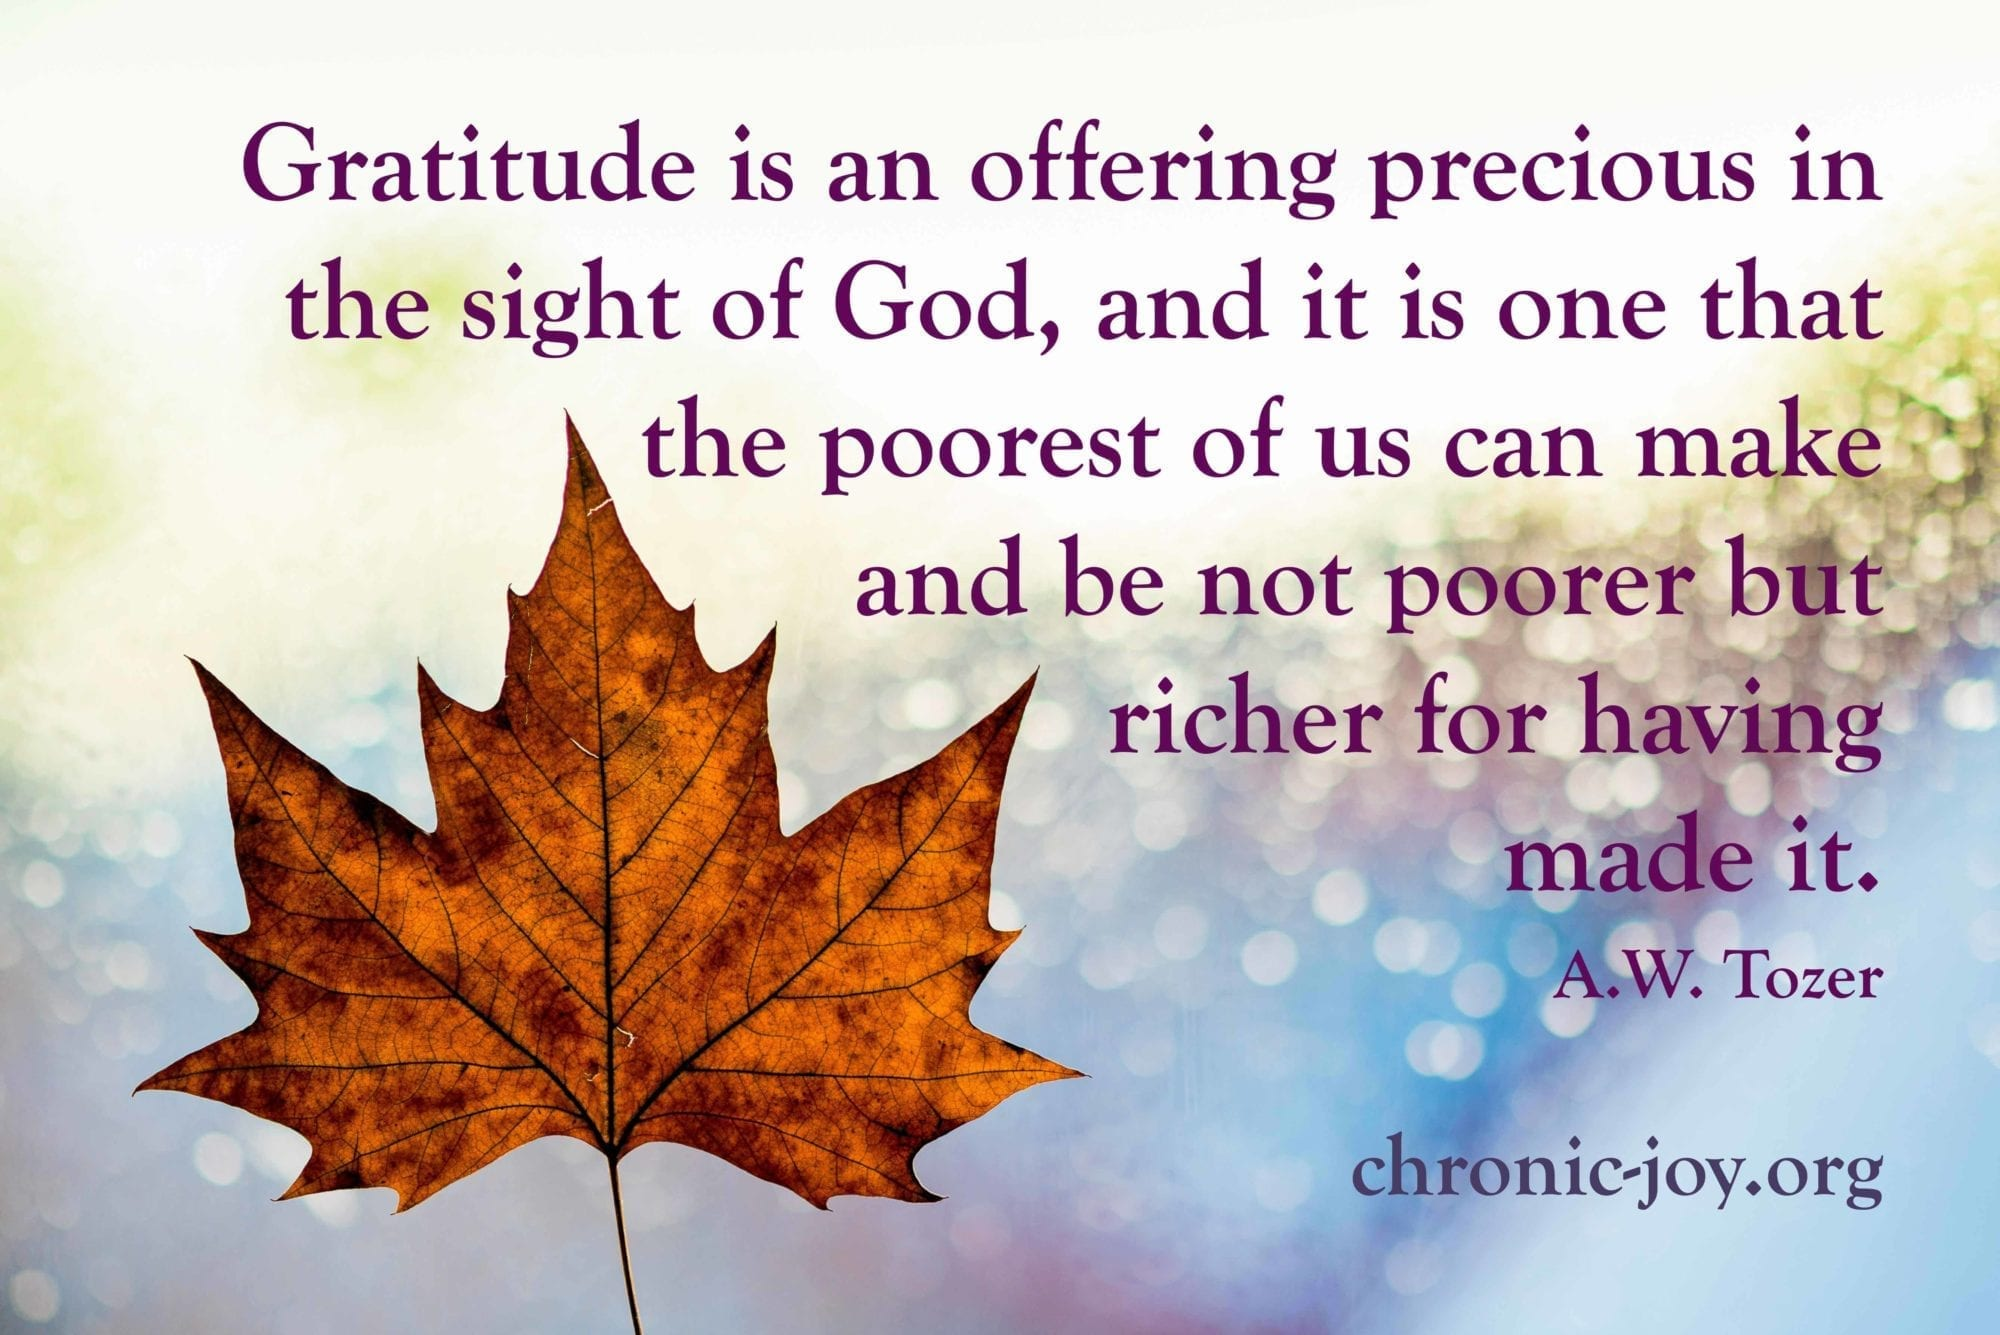 We are richer because of gratitude.